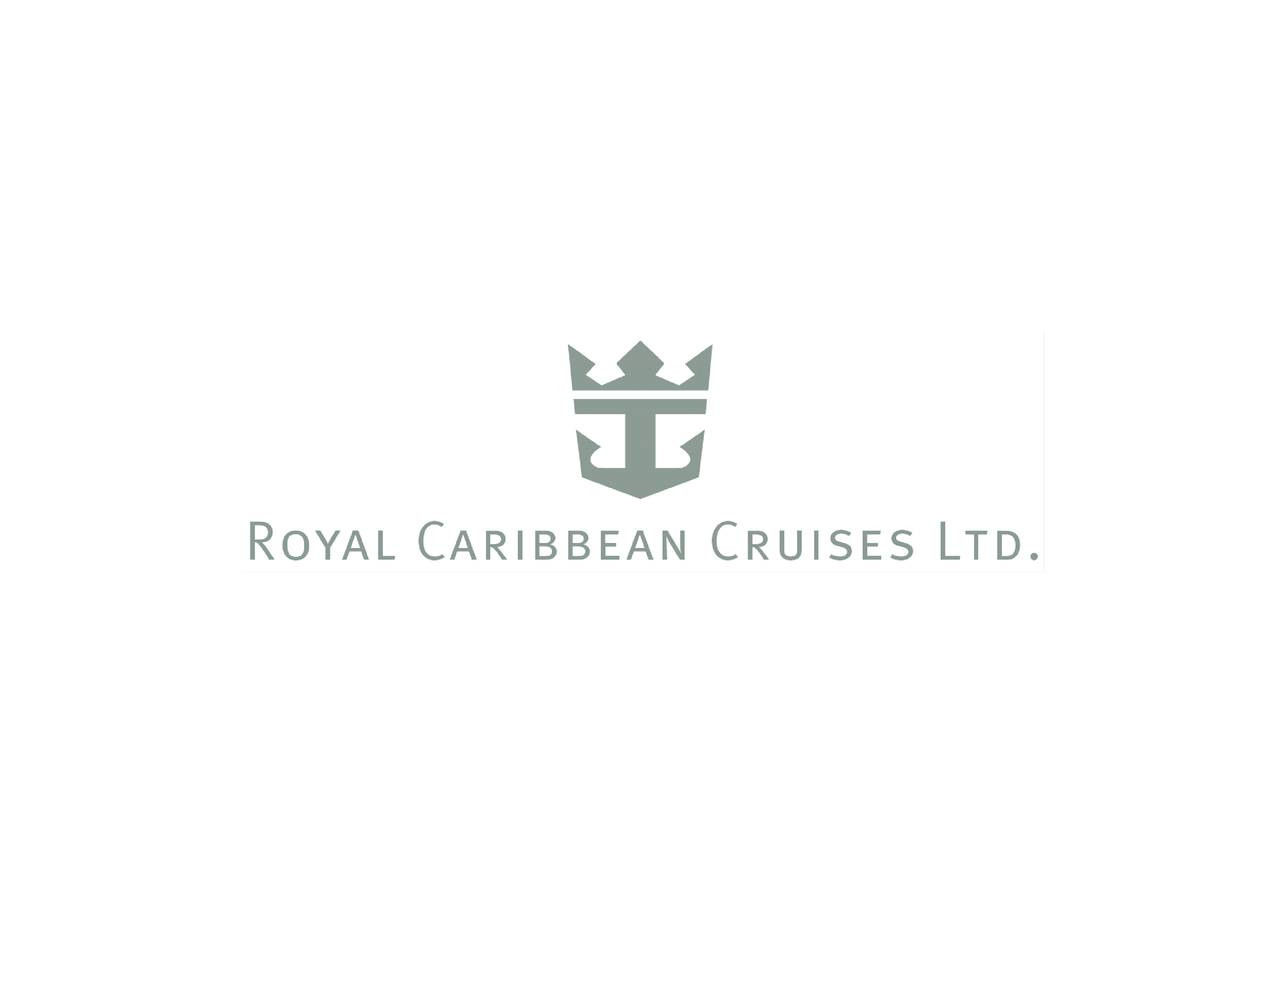 strategic position analysis royal caribbean Royal caribbean was founded in the year 1968, with the merge of few shipping companies such as anders wilhelmsen & company royal caribbean swot analysis.